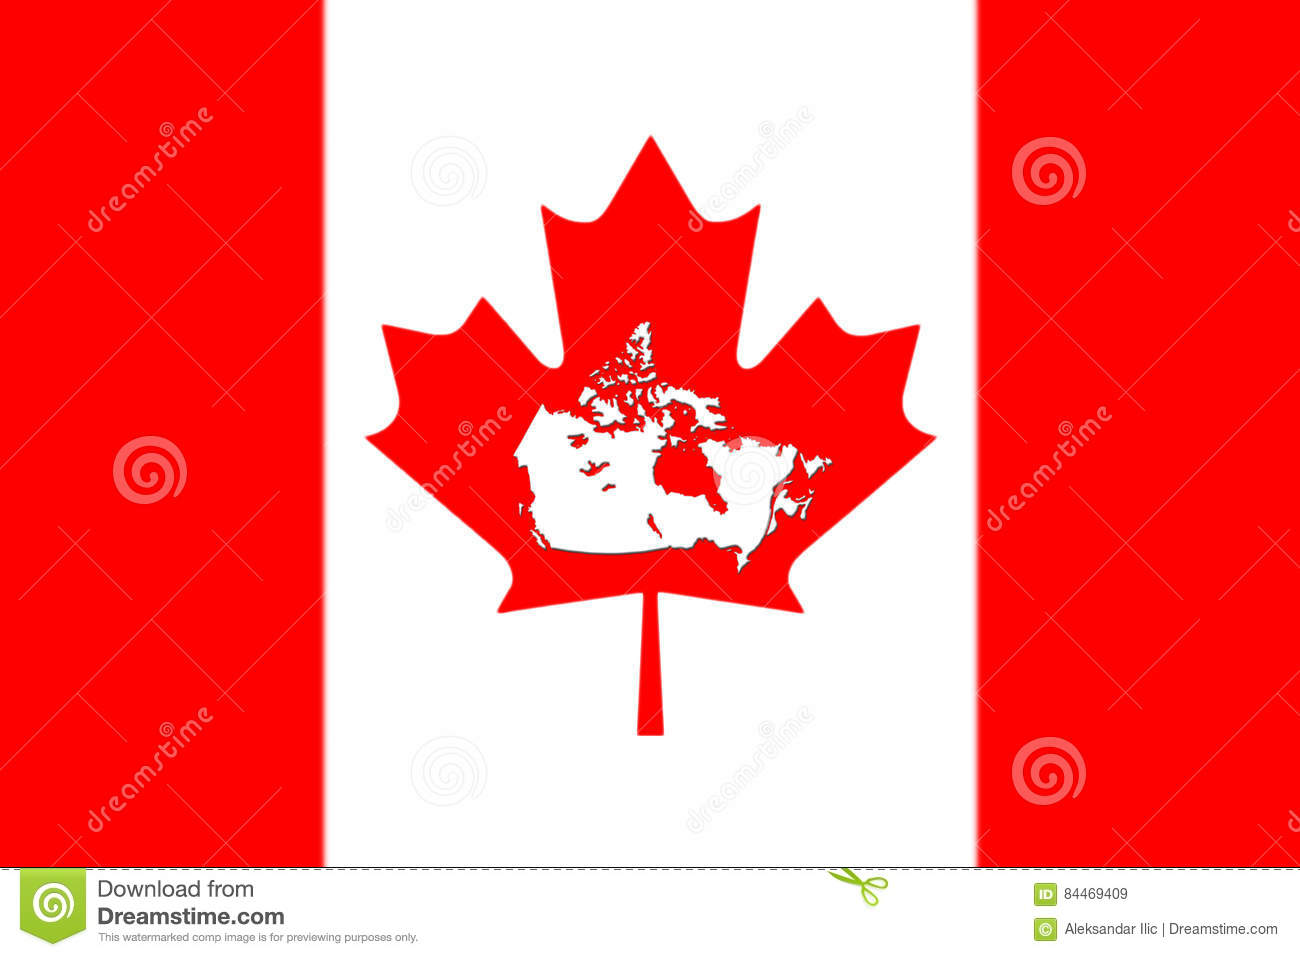 Canada Map Flag.Canadian Map With Flag On It 3d Rendering Stock Illustration